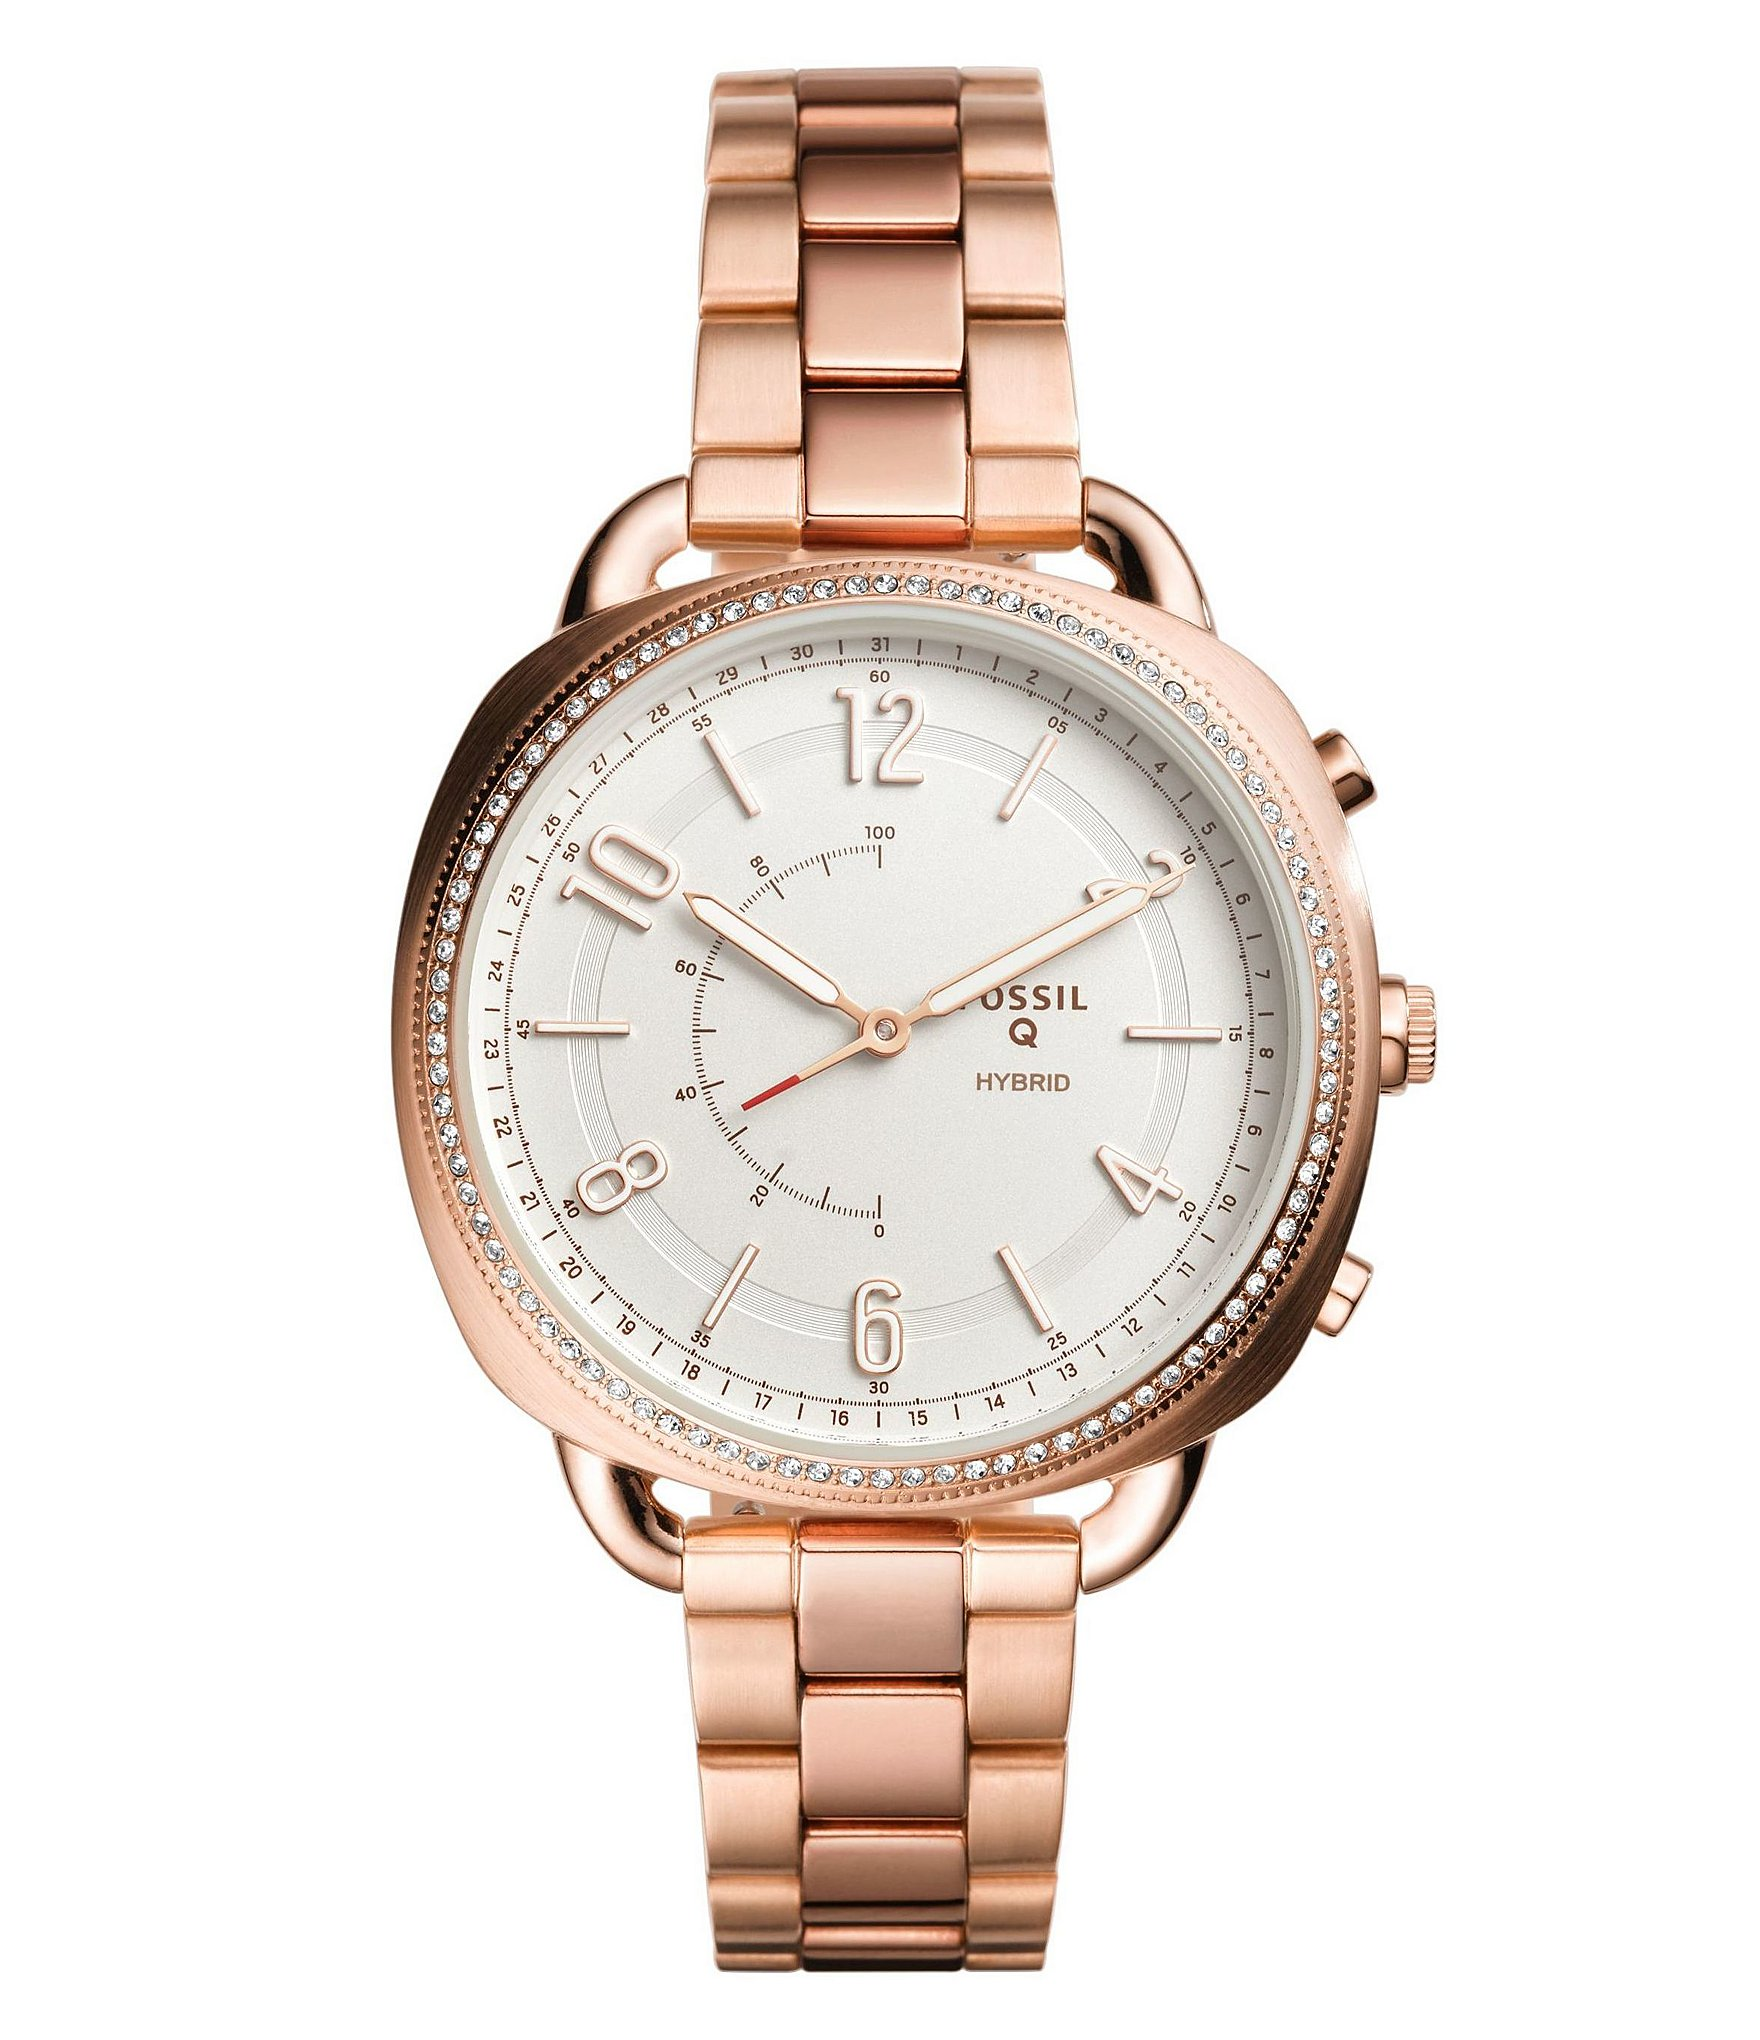 Buy Michael Kors Women's Darci Rose Gold-Tone Watch MK and other Wrist Watches at educational-gave.ml Our wide selection is eligible for free shipping and free returns.